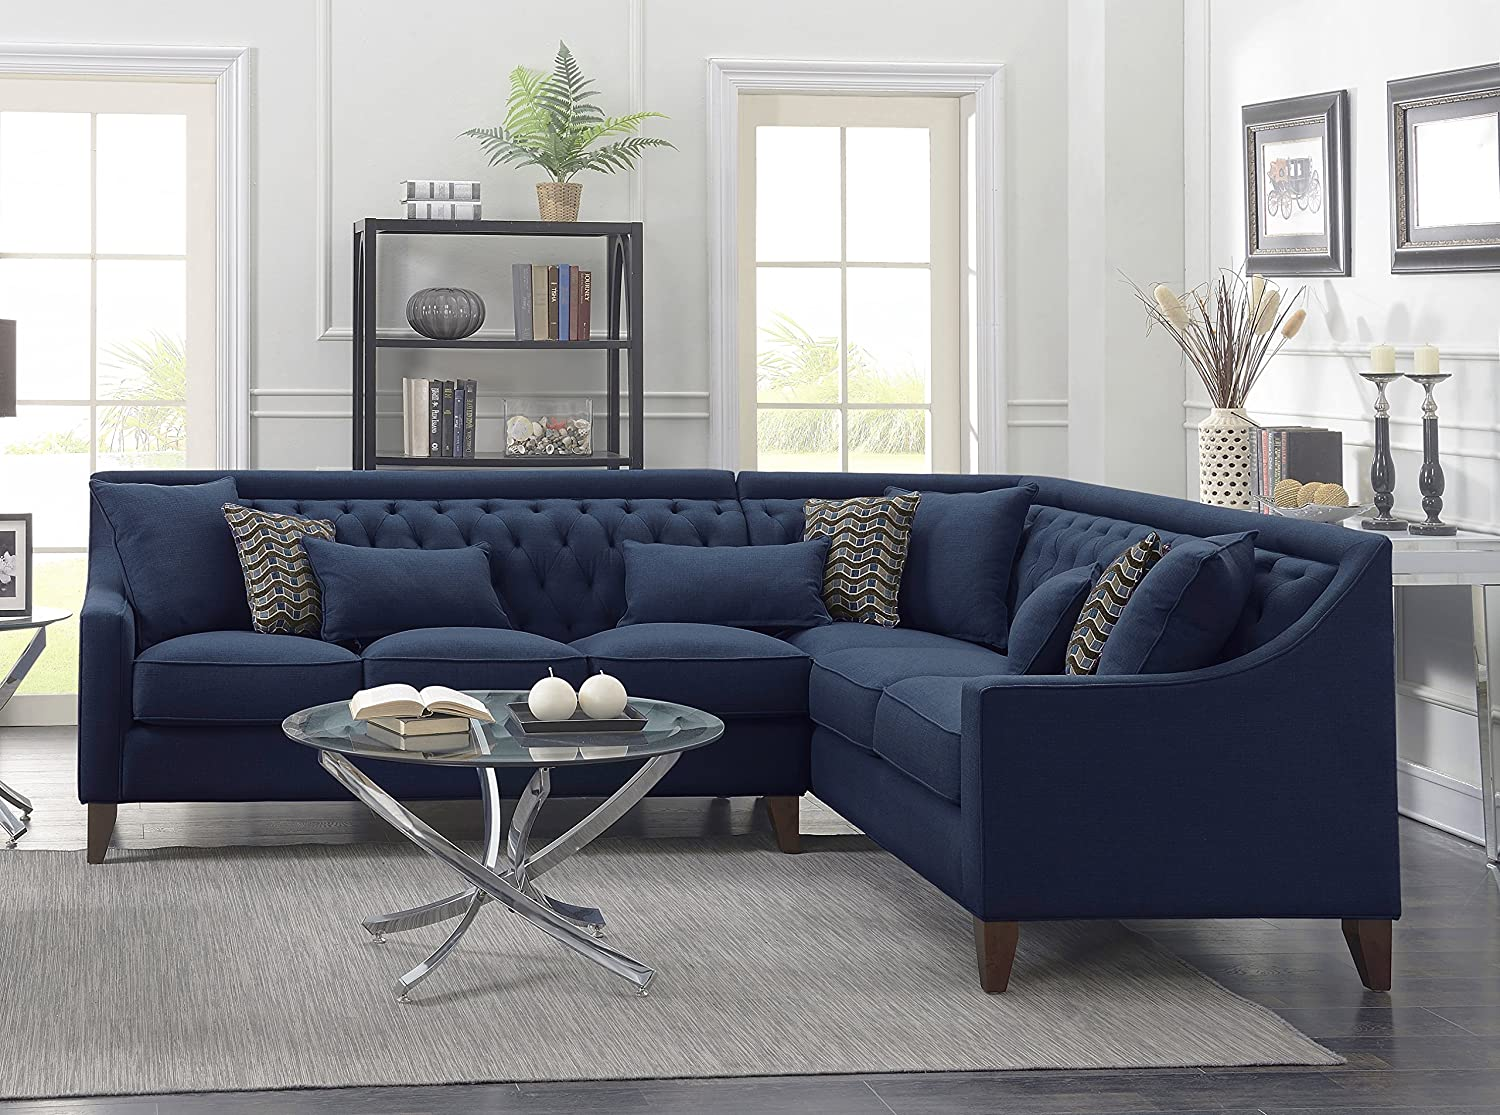 Amazon com iconic home aberdeen linen tufted down mix modern contemporary right facing sectional sofa navy home kitchen